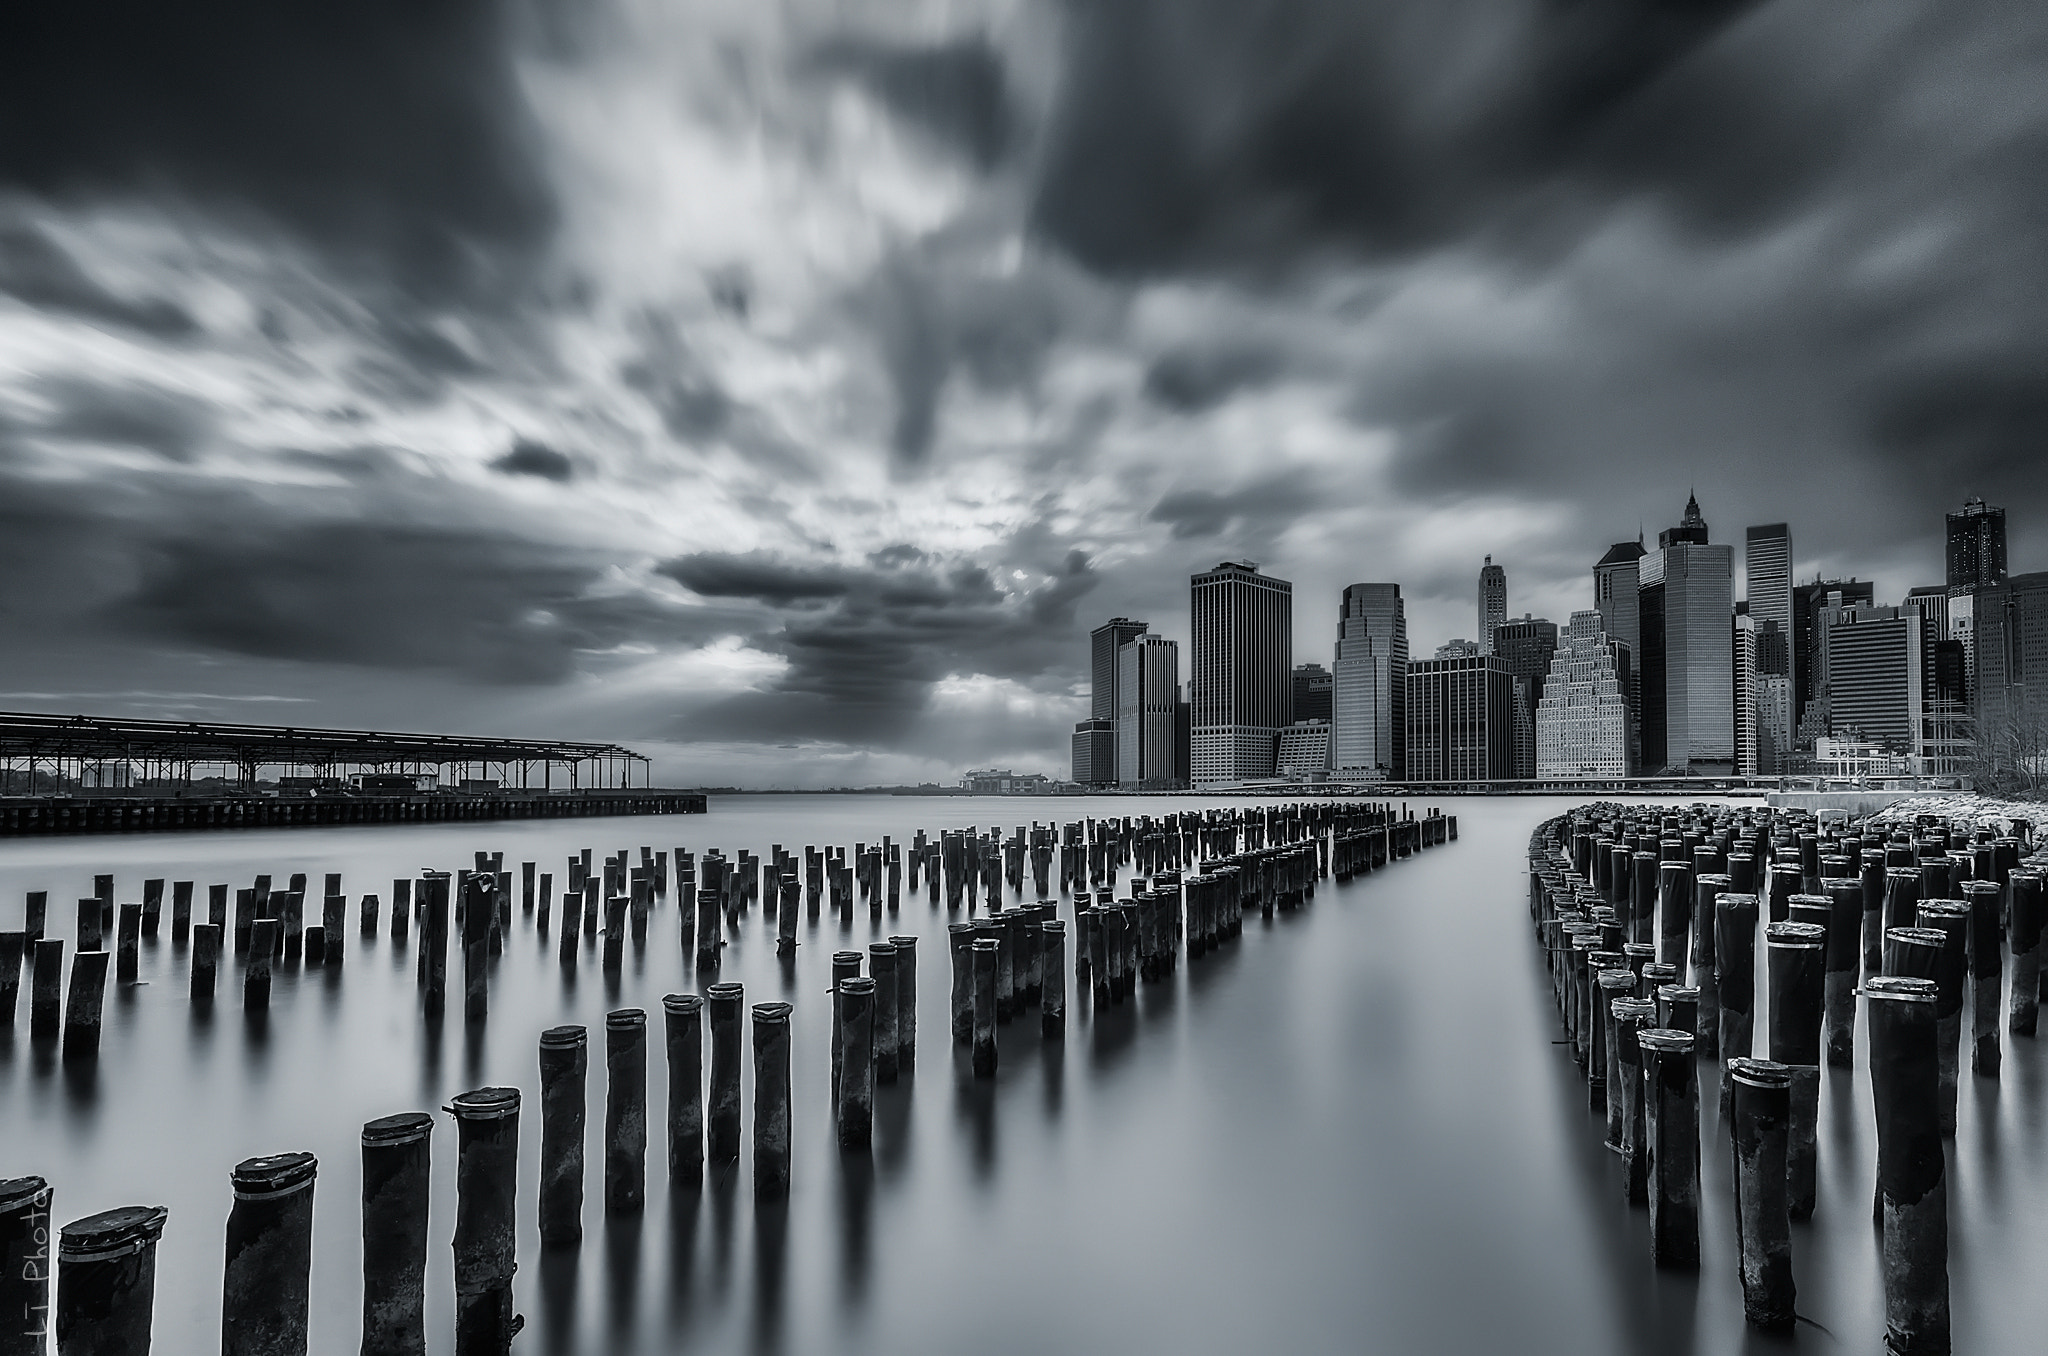 Photograph NYC Skyline by Javier de la Torre on 500px